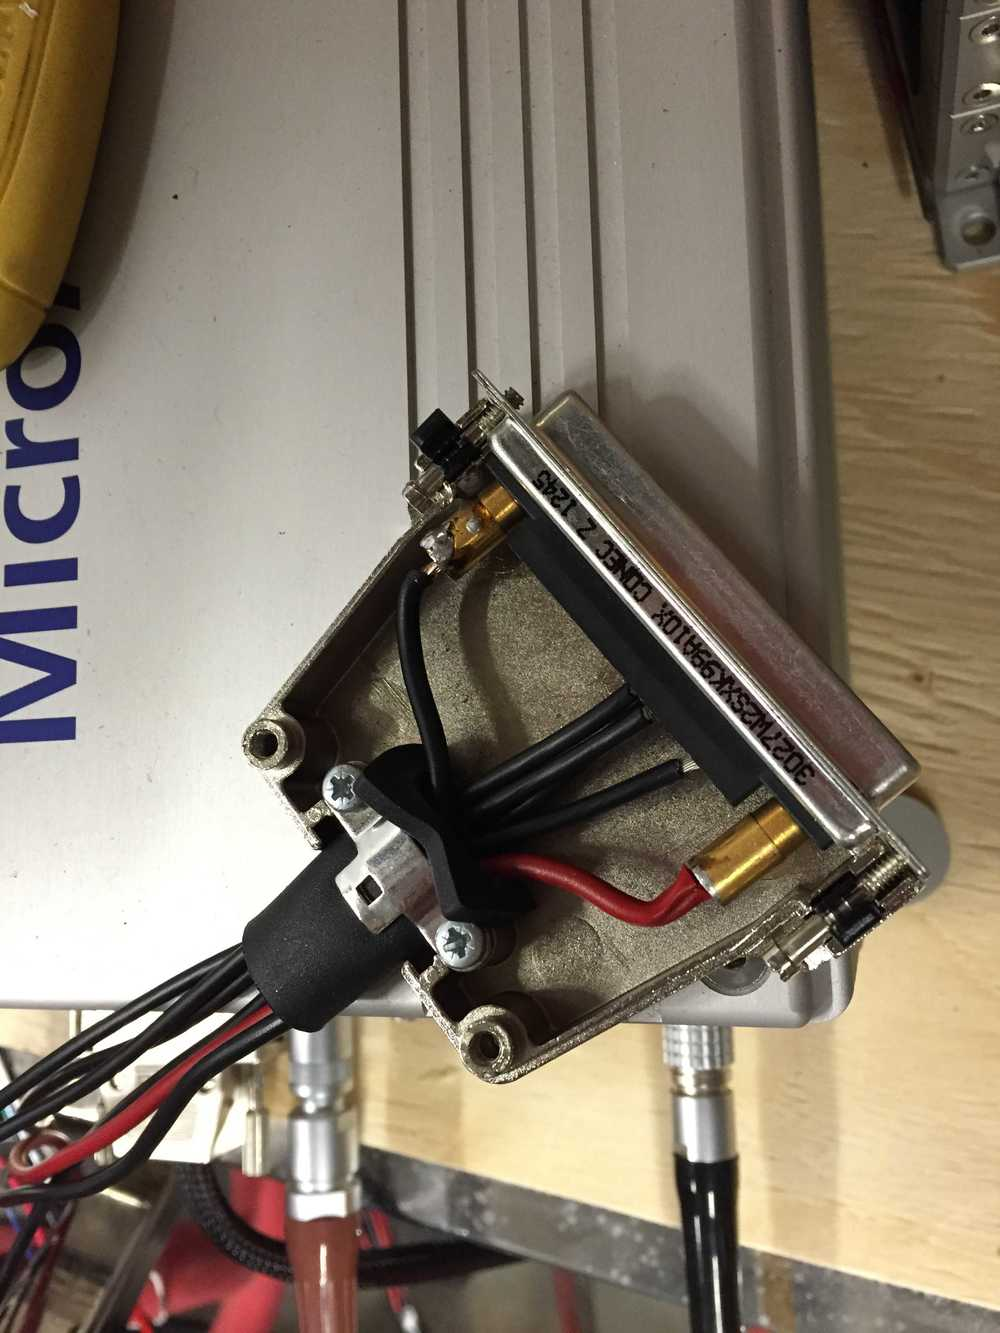 Port injector to RP connector.